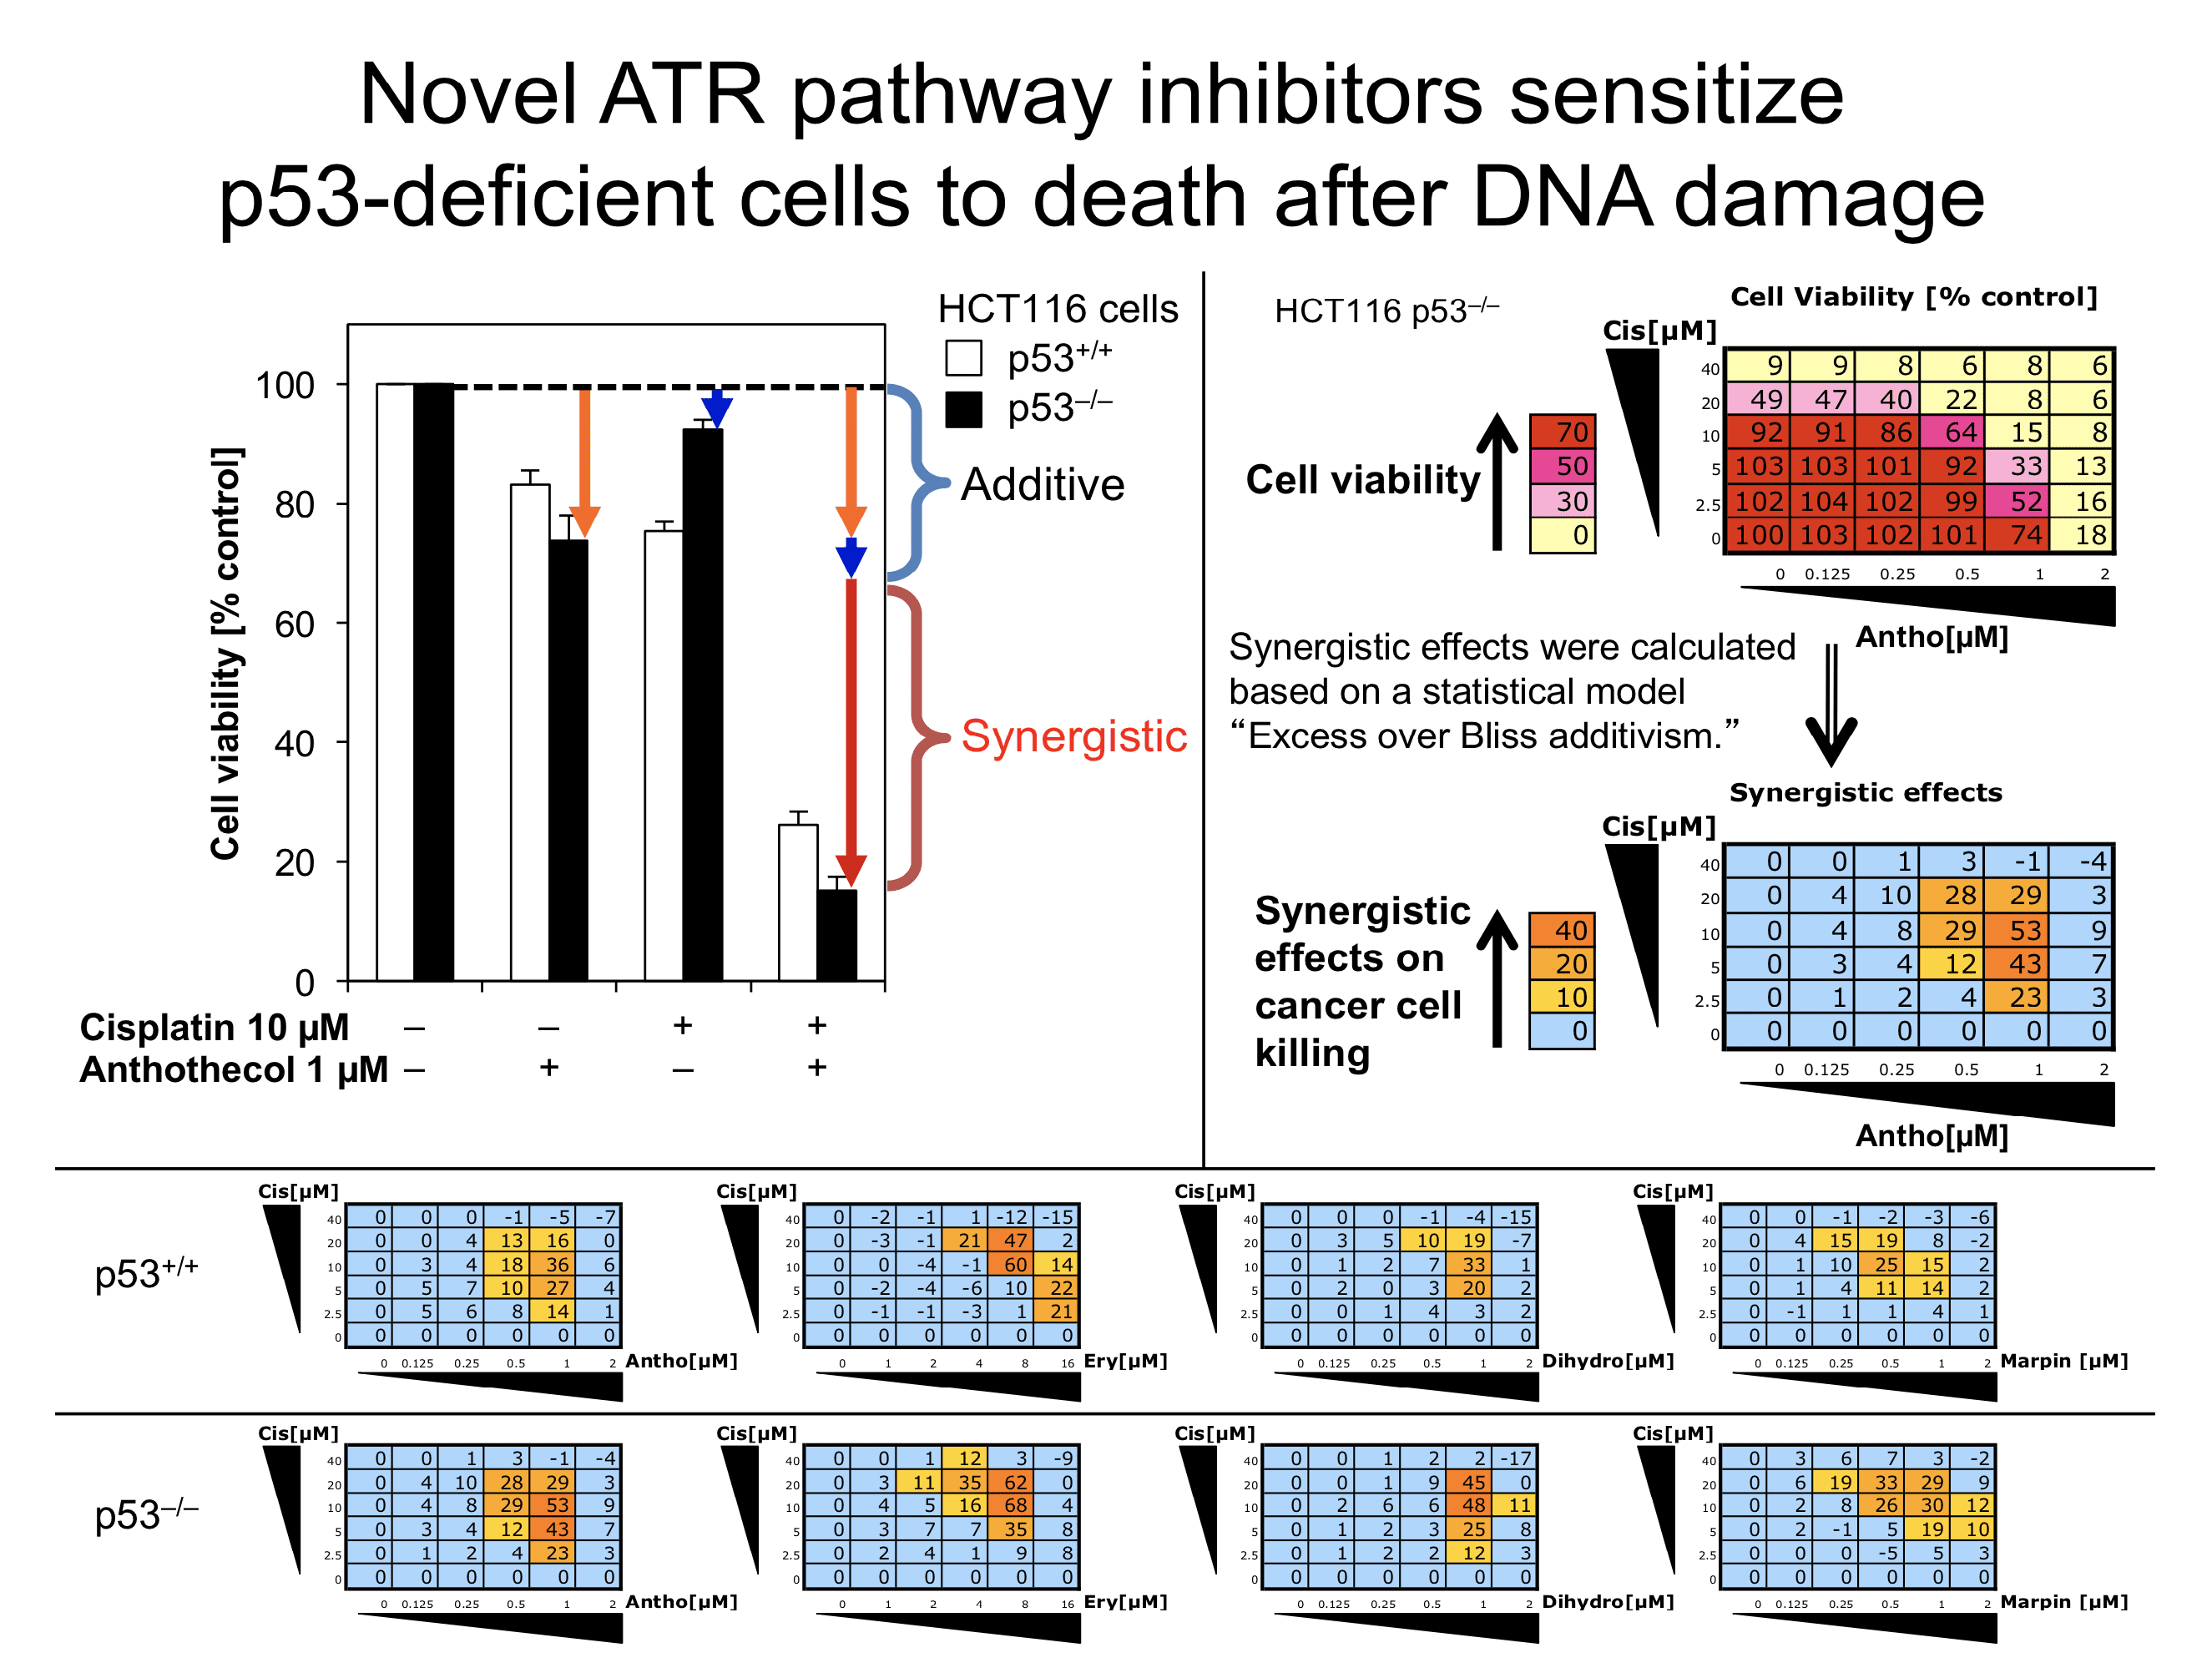 KawasumiLab-Research-02-ATRInhibitors-03-ChemosensitizationByNovelATRPathwayInhibitors